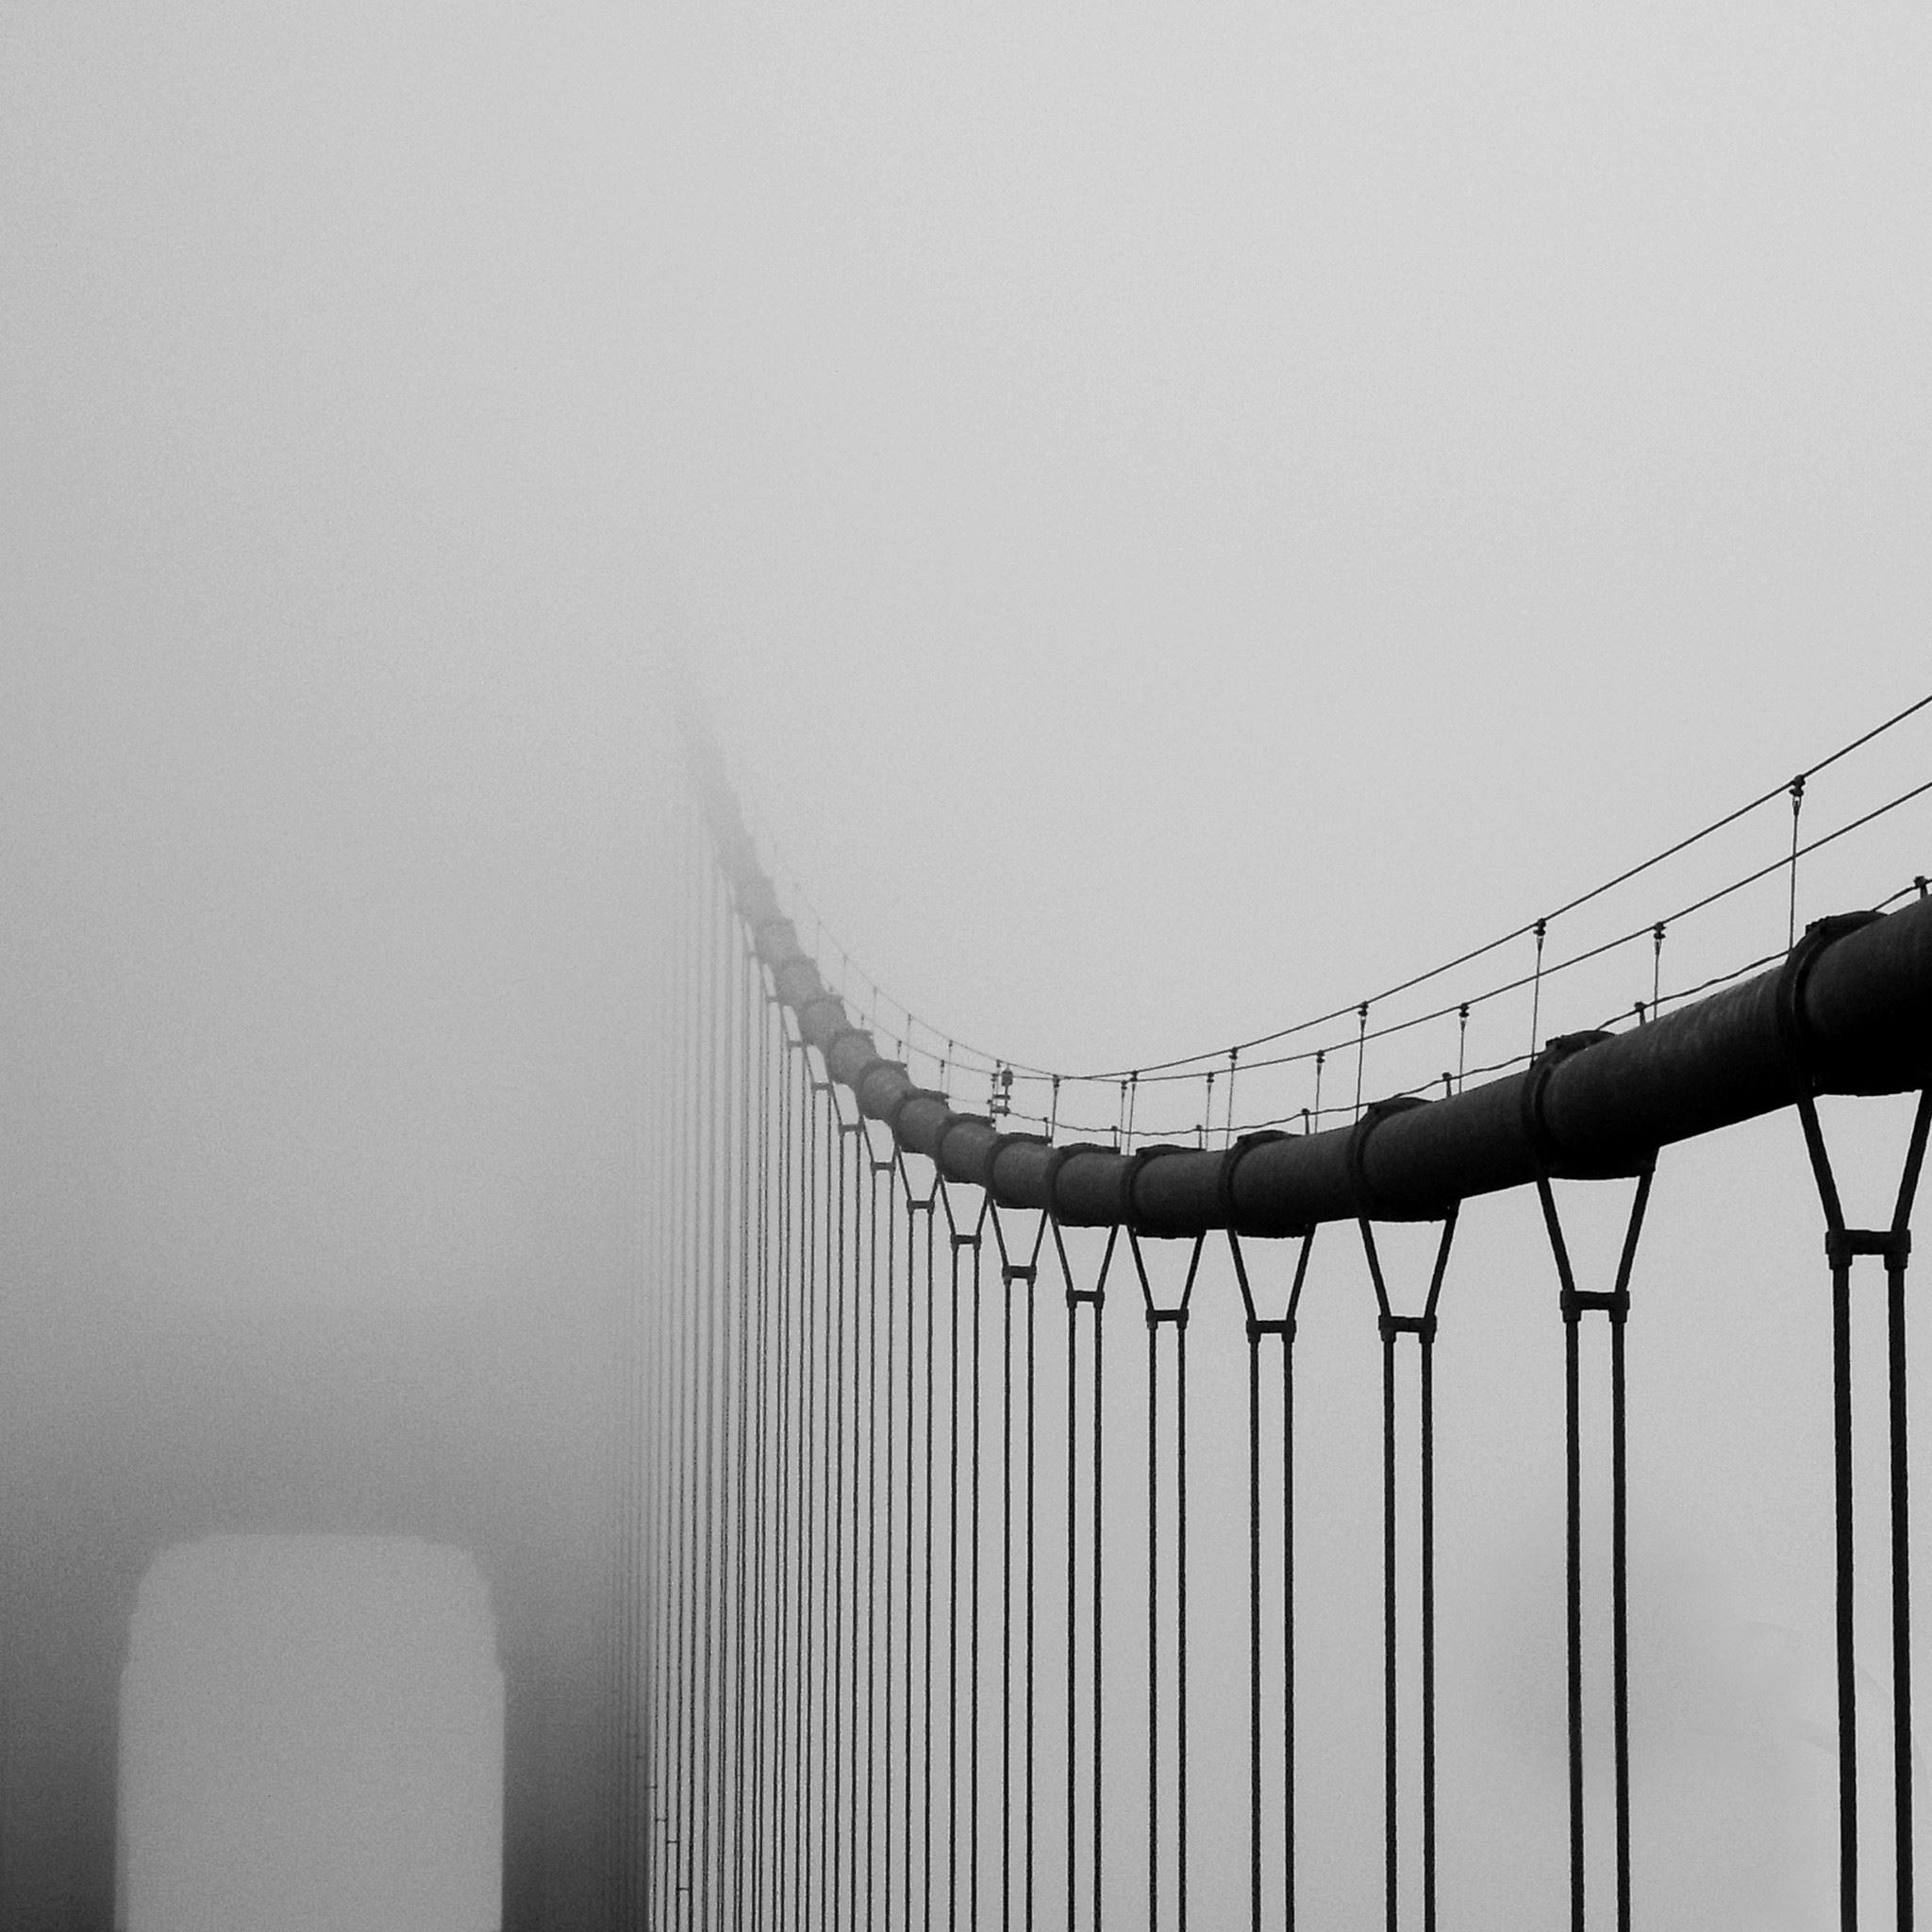 Foggy Bridge Landscape iPad Air wallpaper